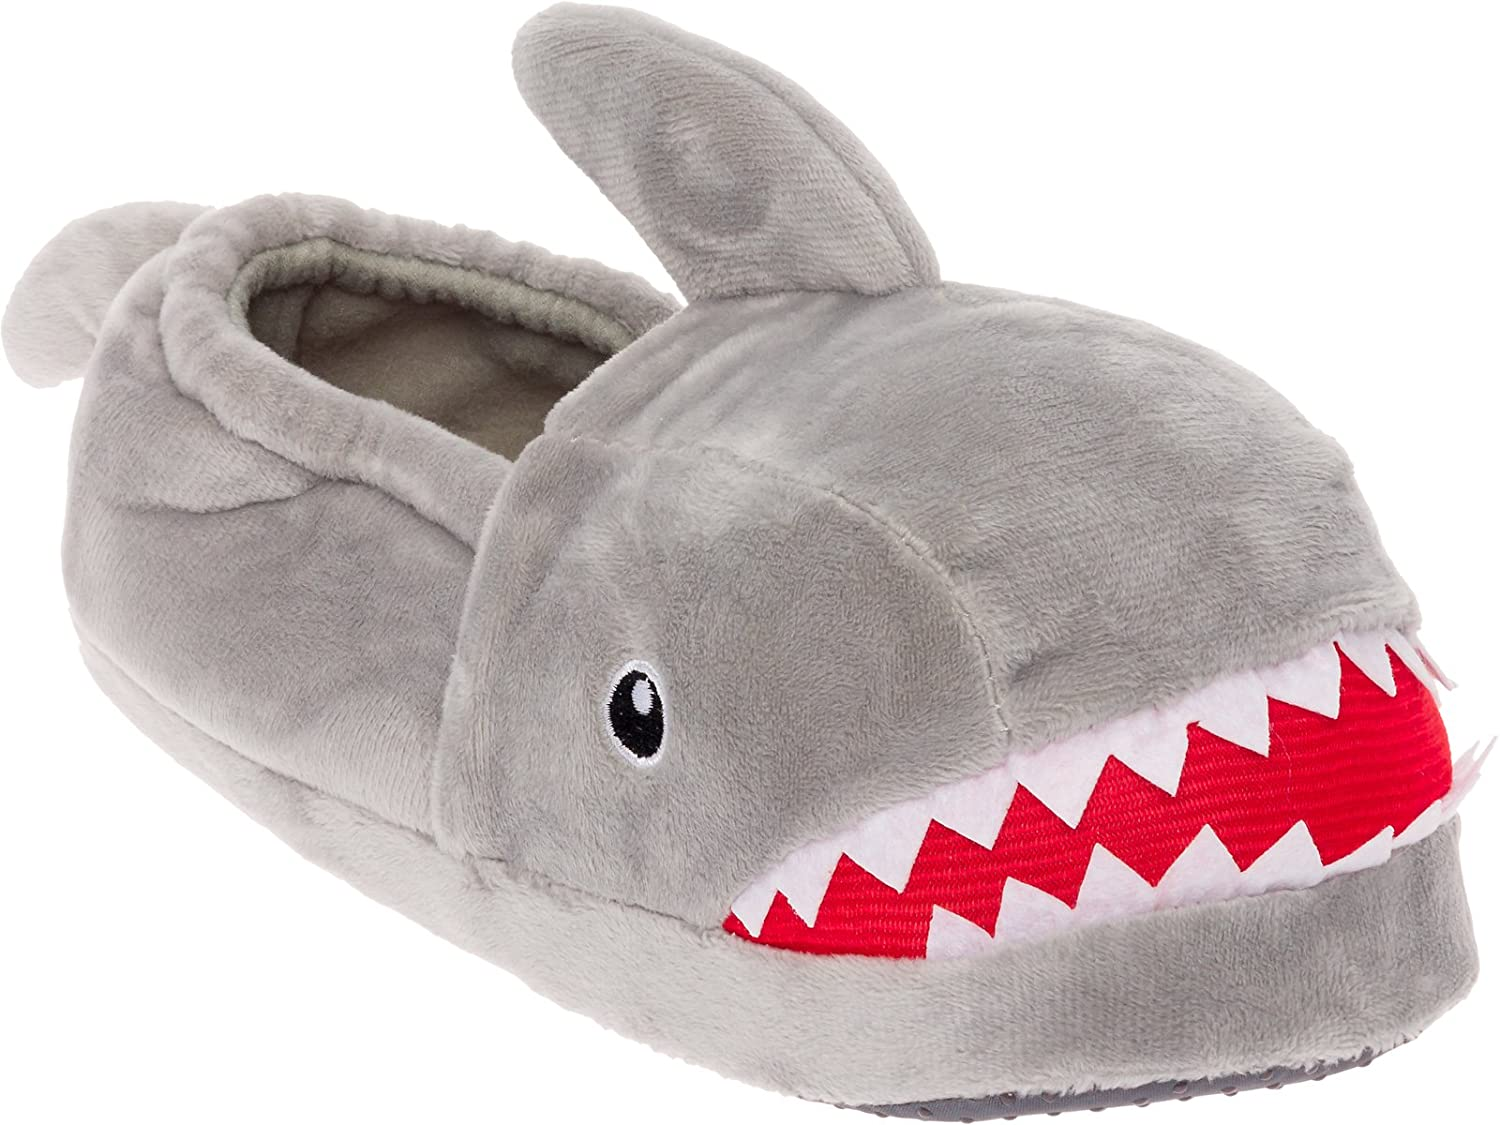 Silver Lilly Shark Plush Slippers - Novelty Animal Slippers w/Foam Support